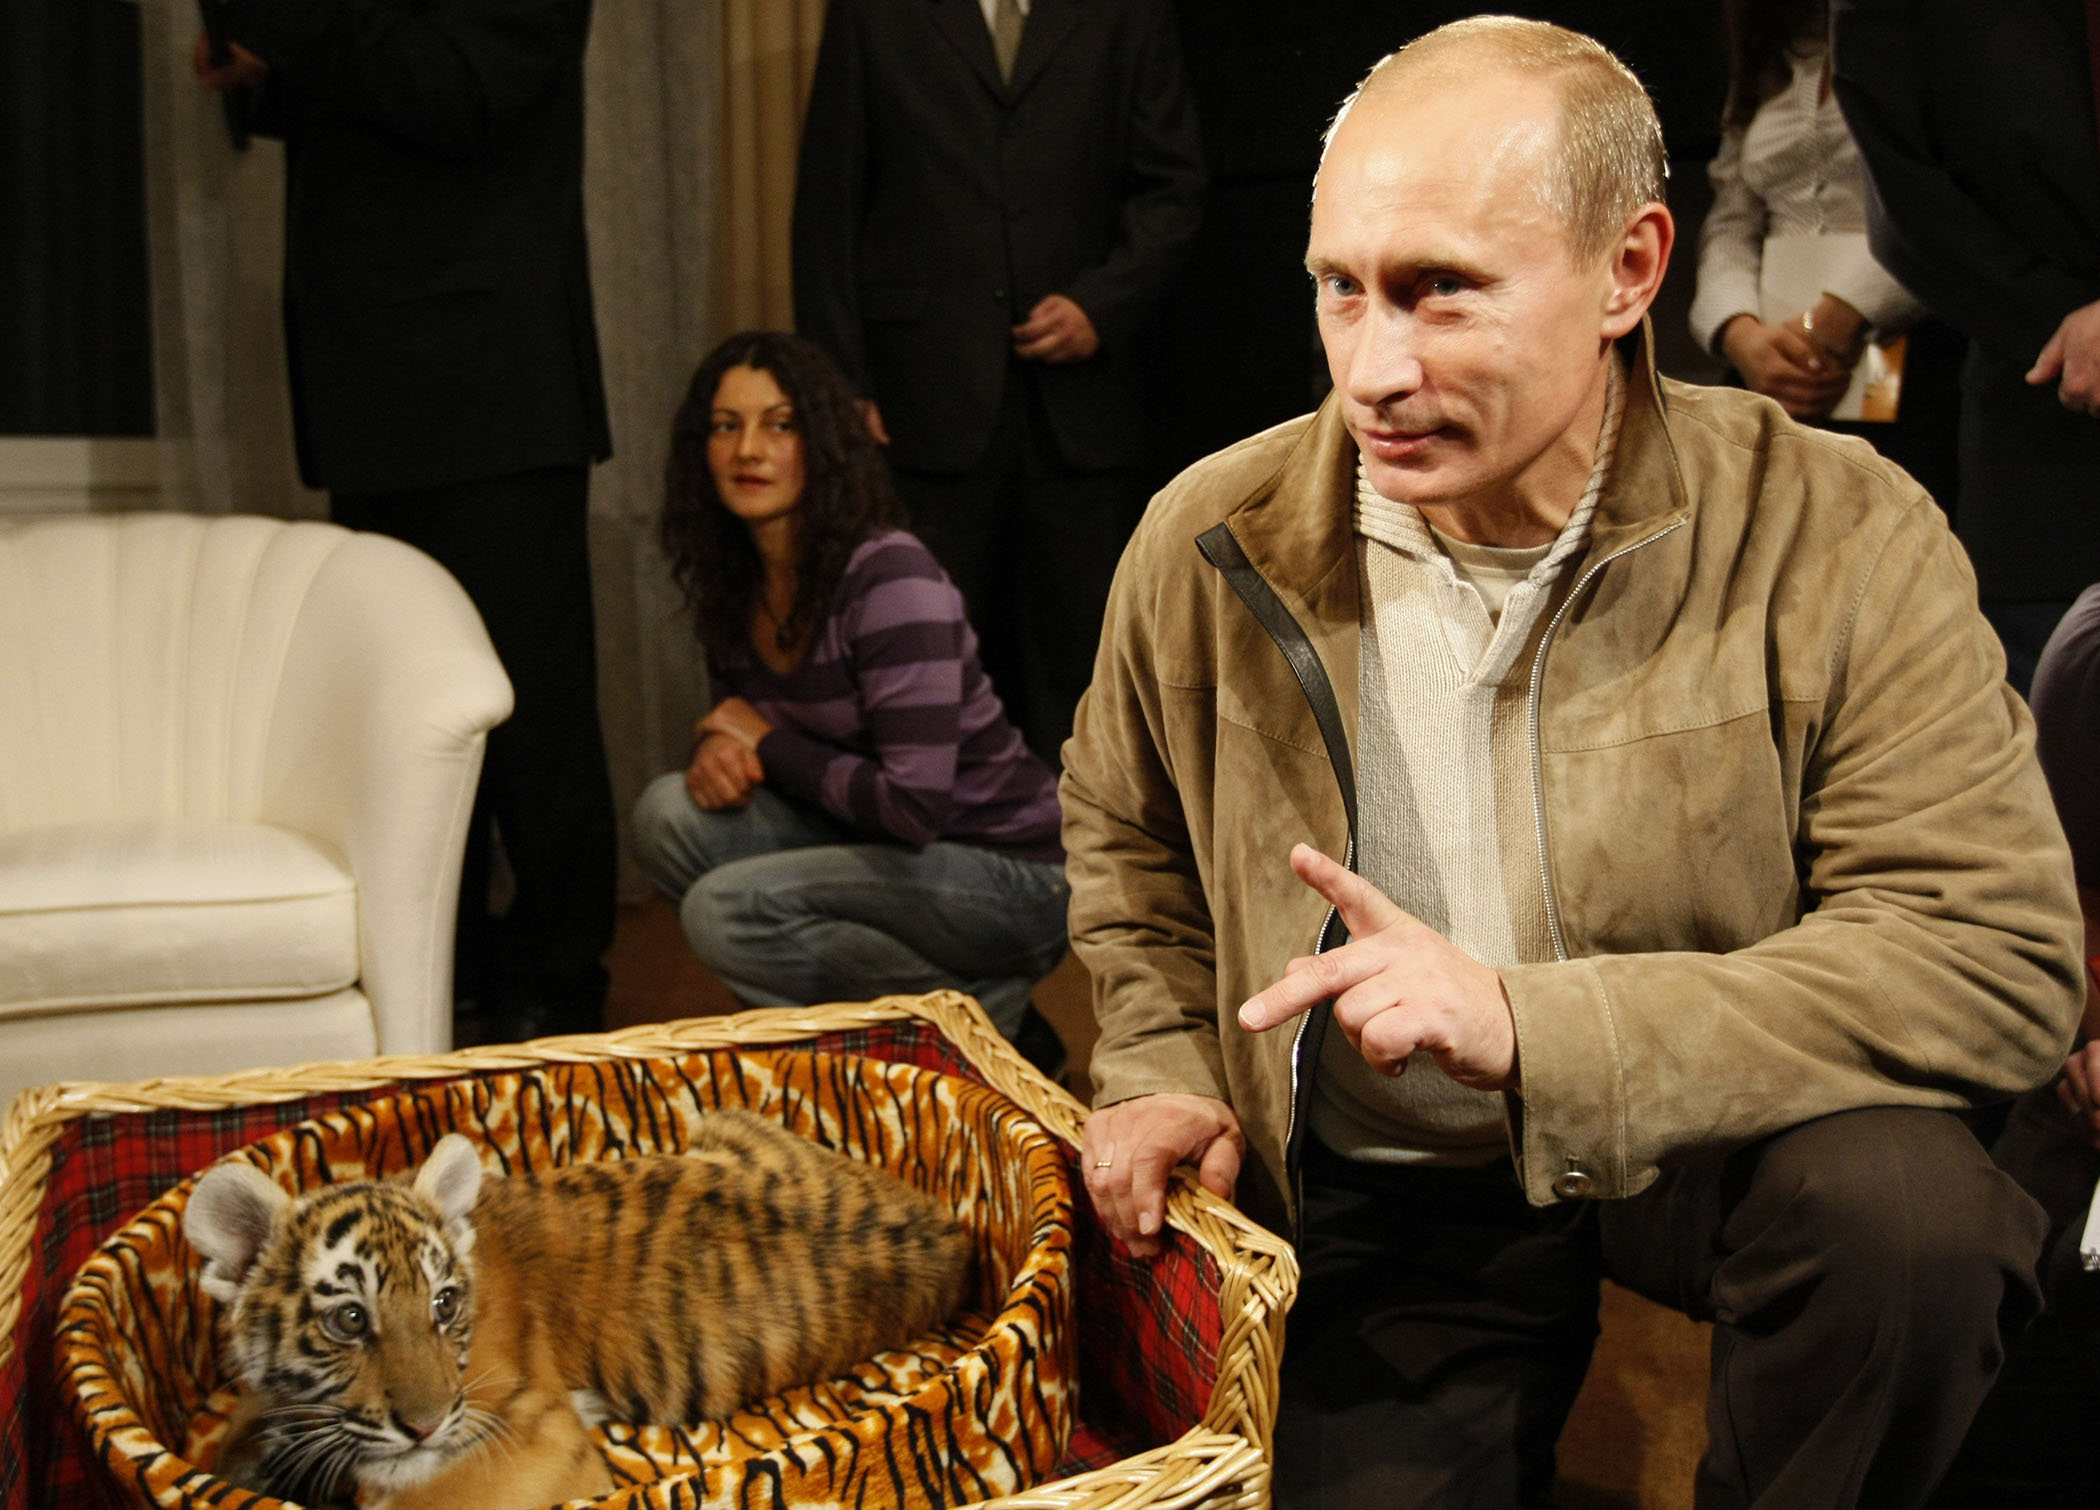 Putin Recieves Baby Tiger for Birthday